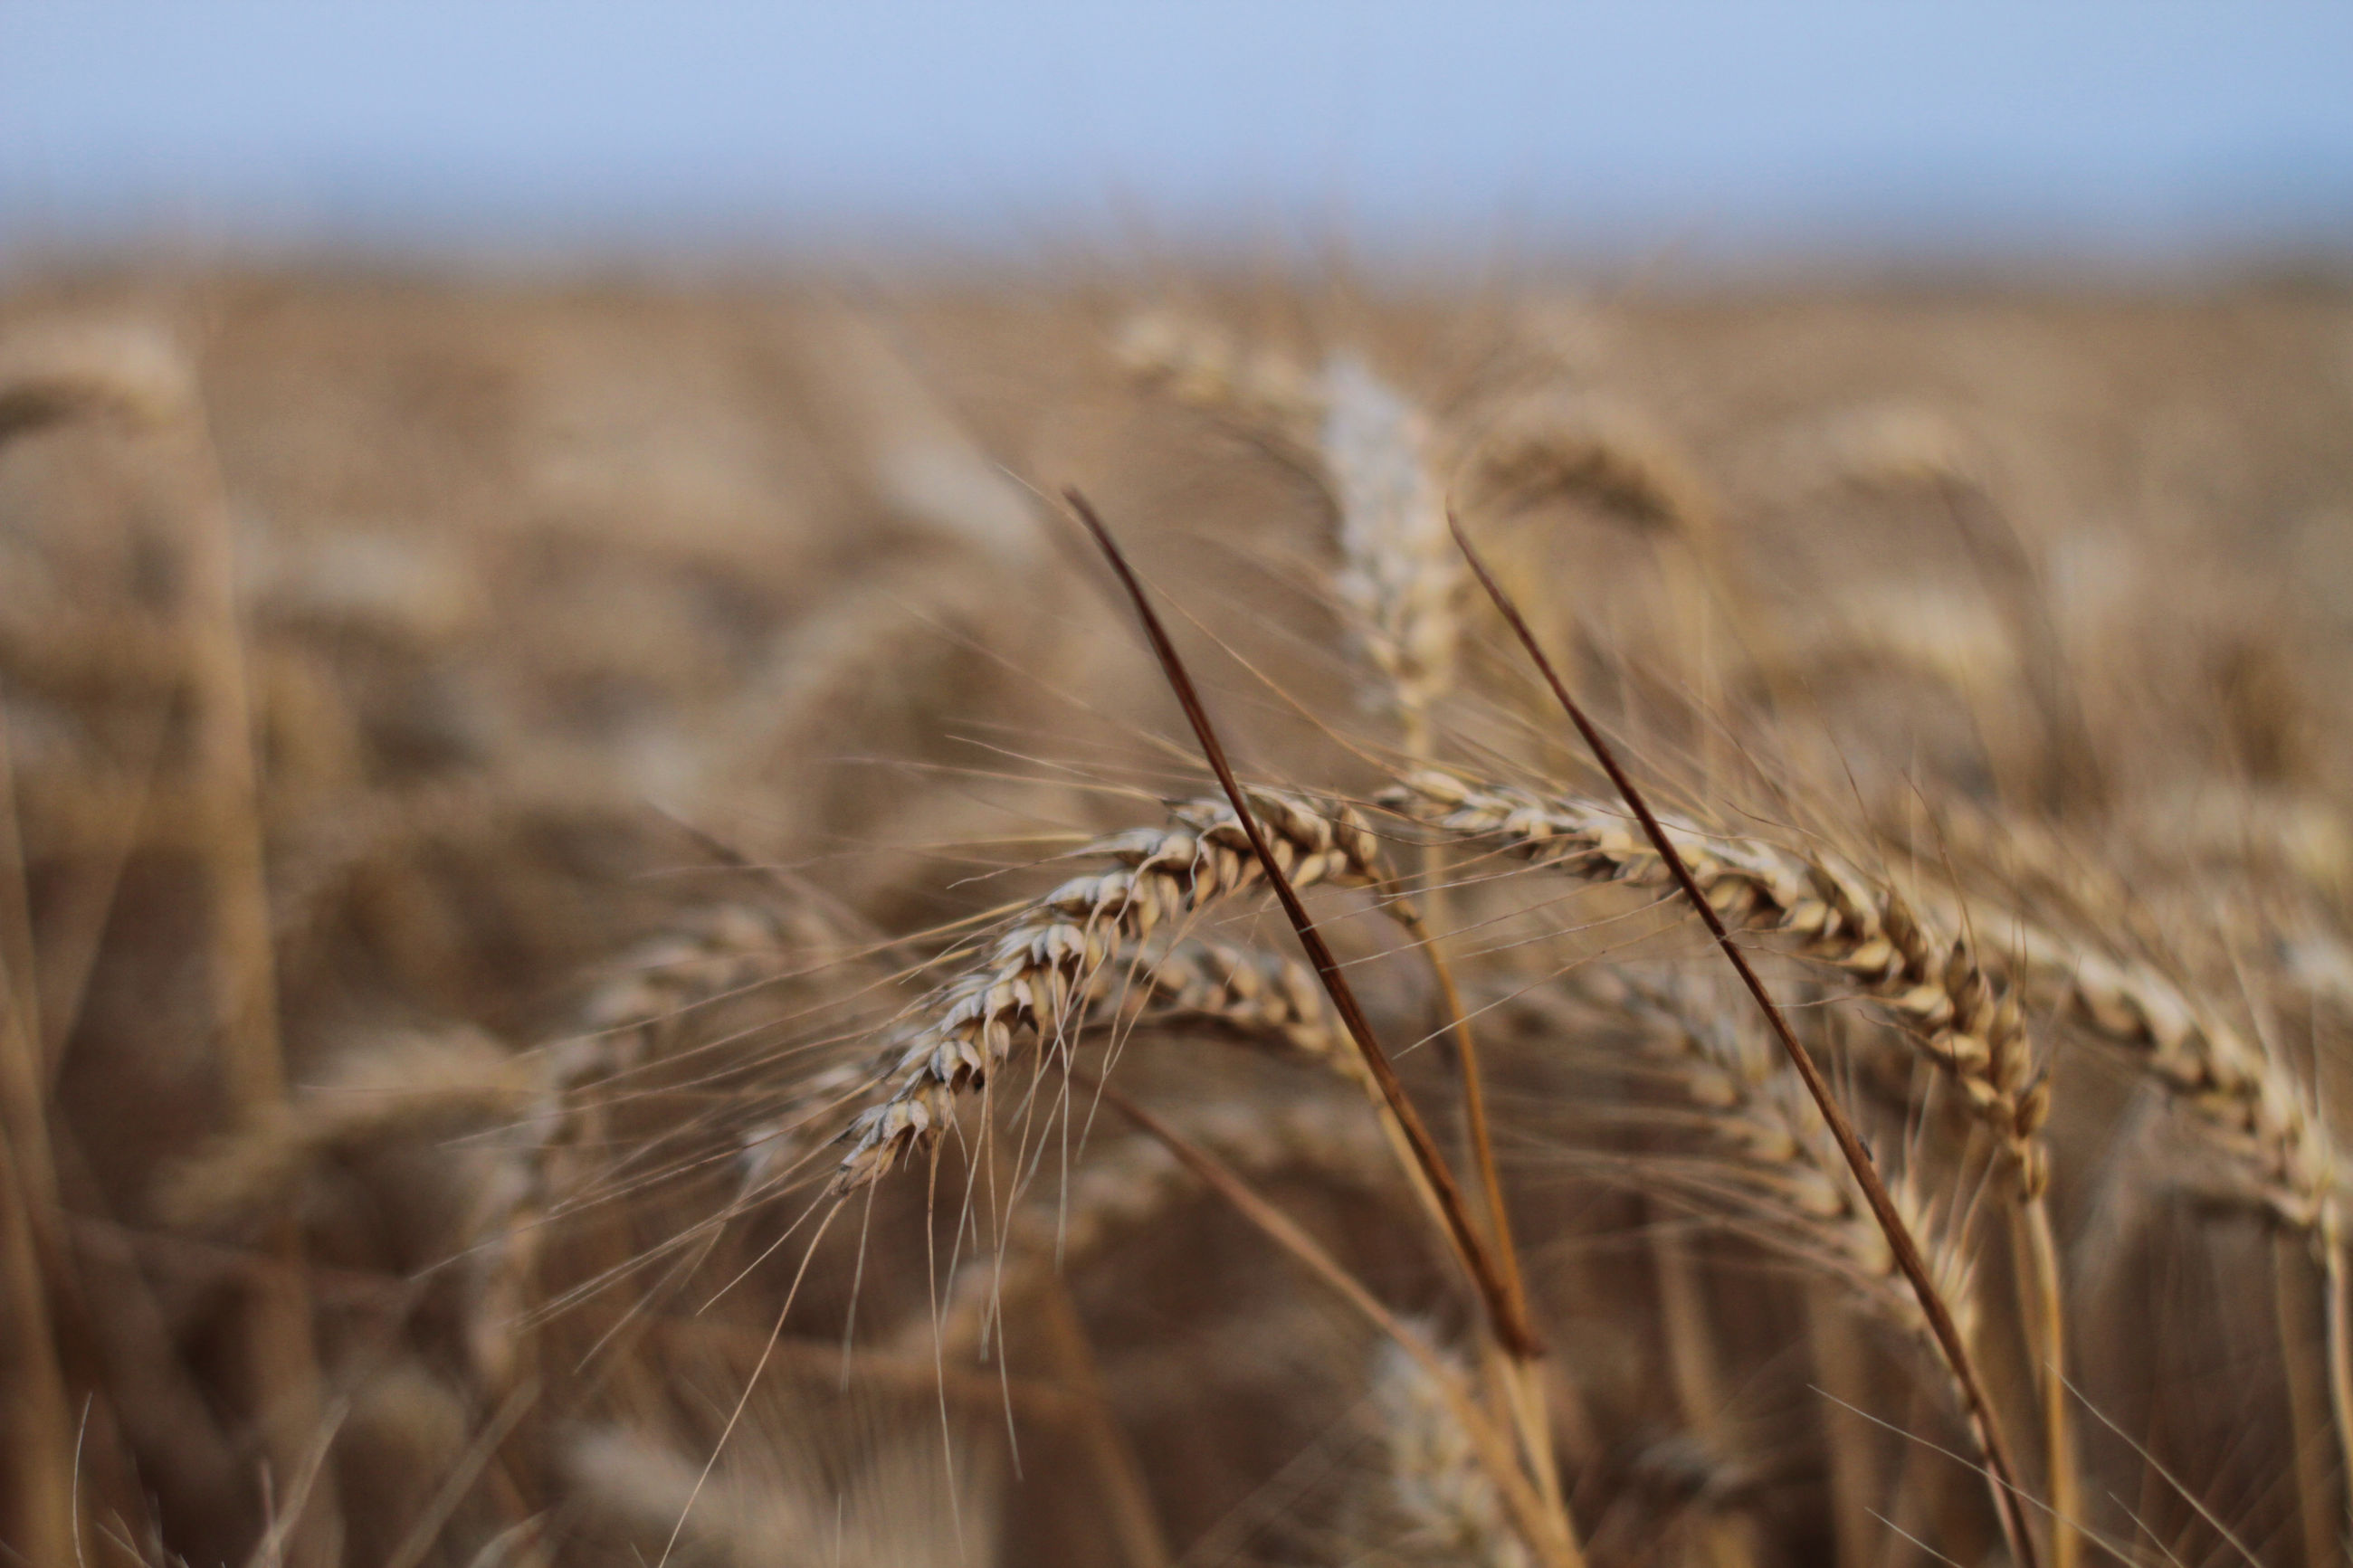 Close-up of wheat plants on field